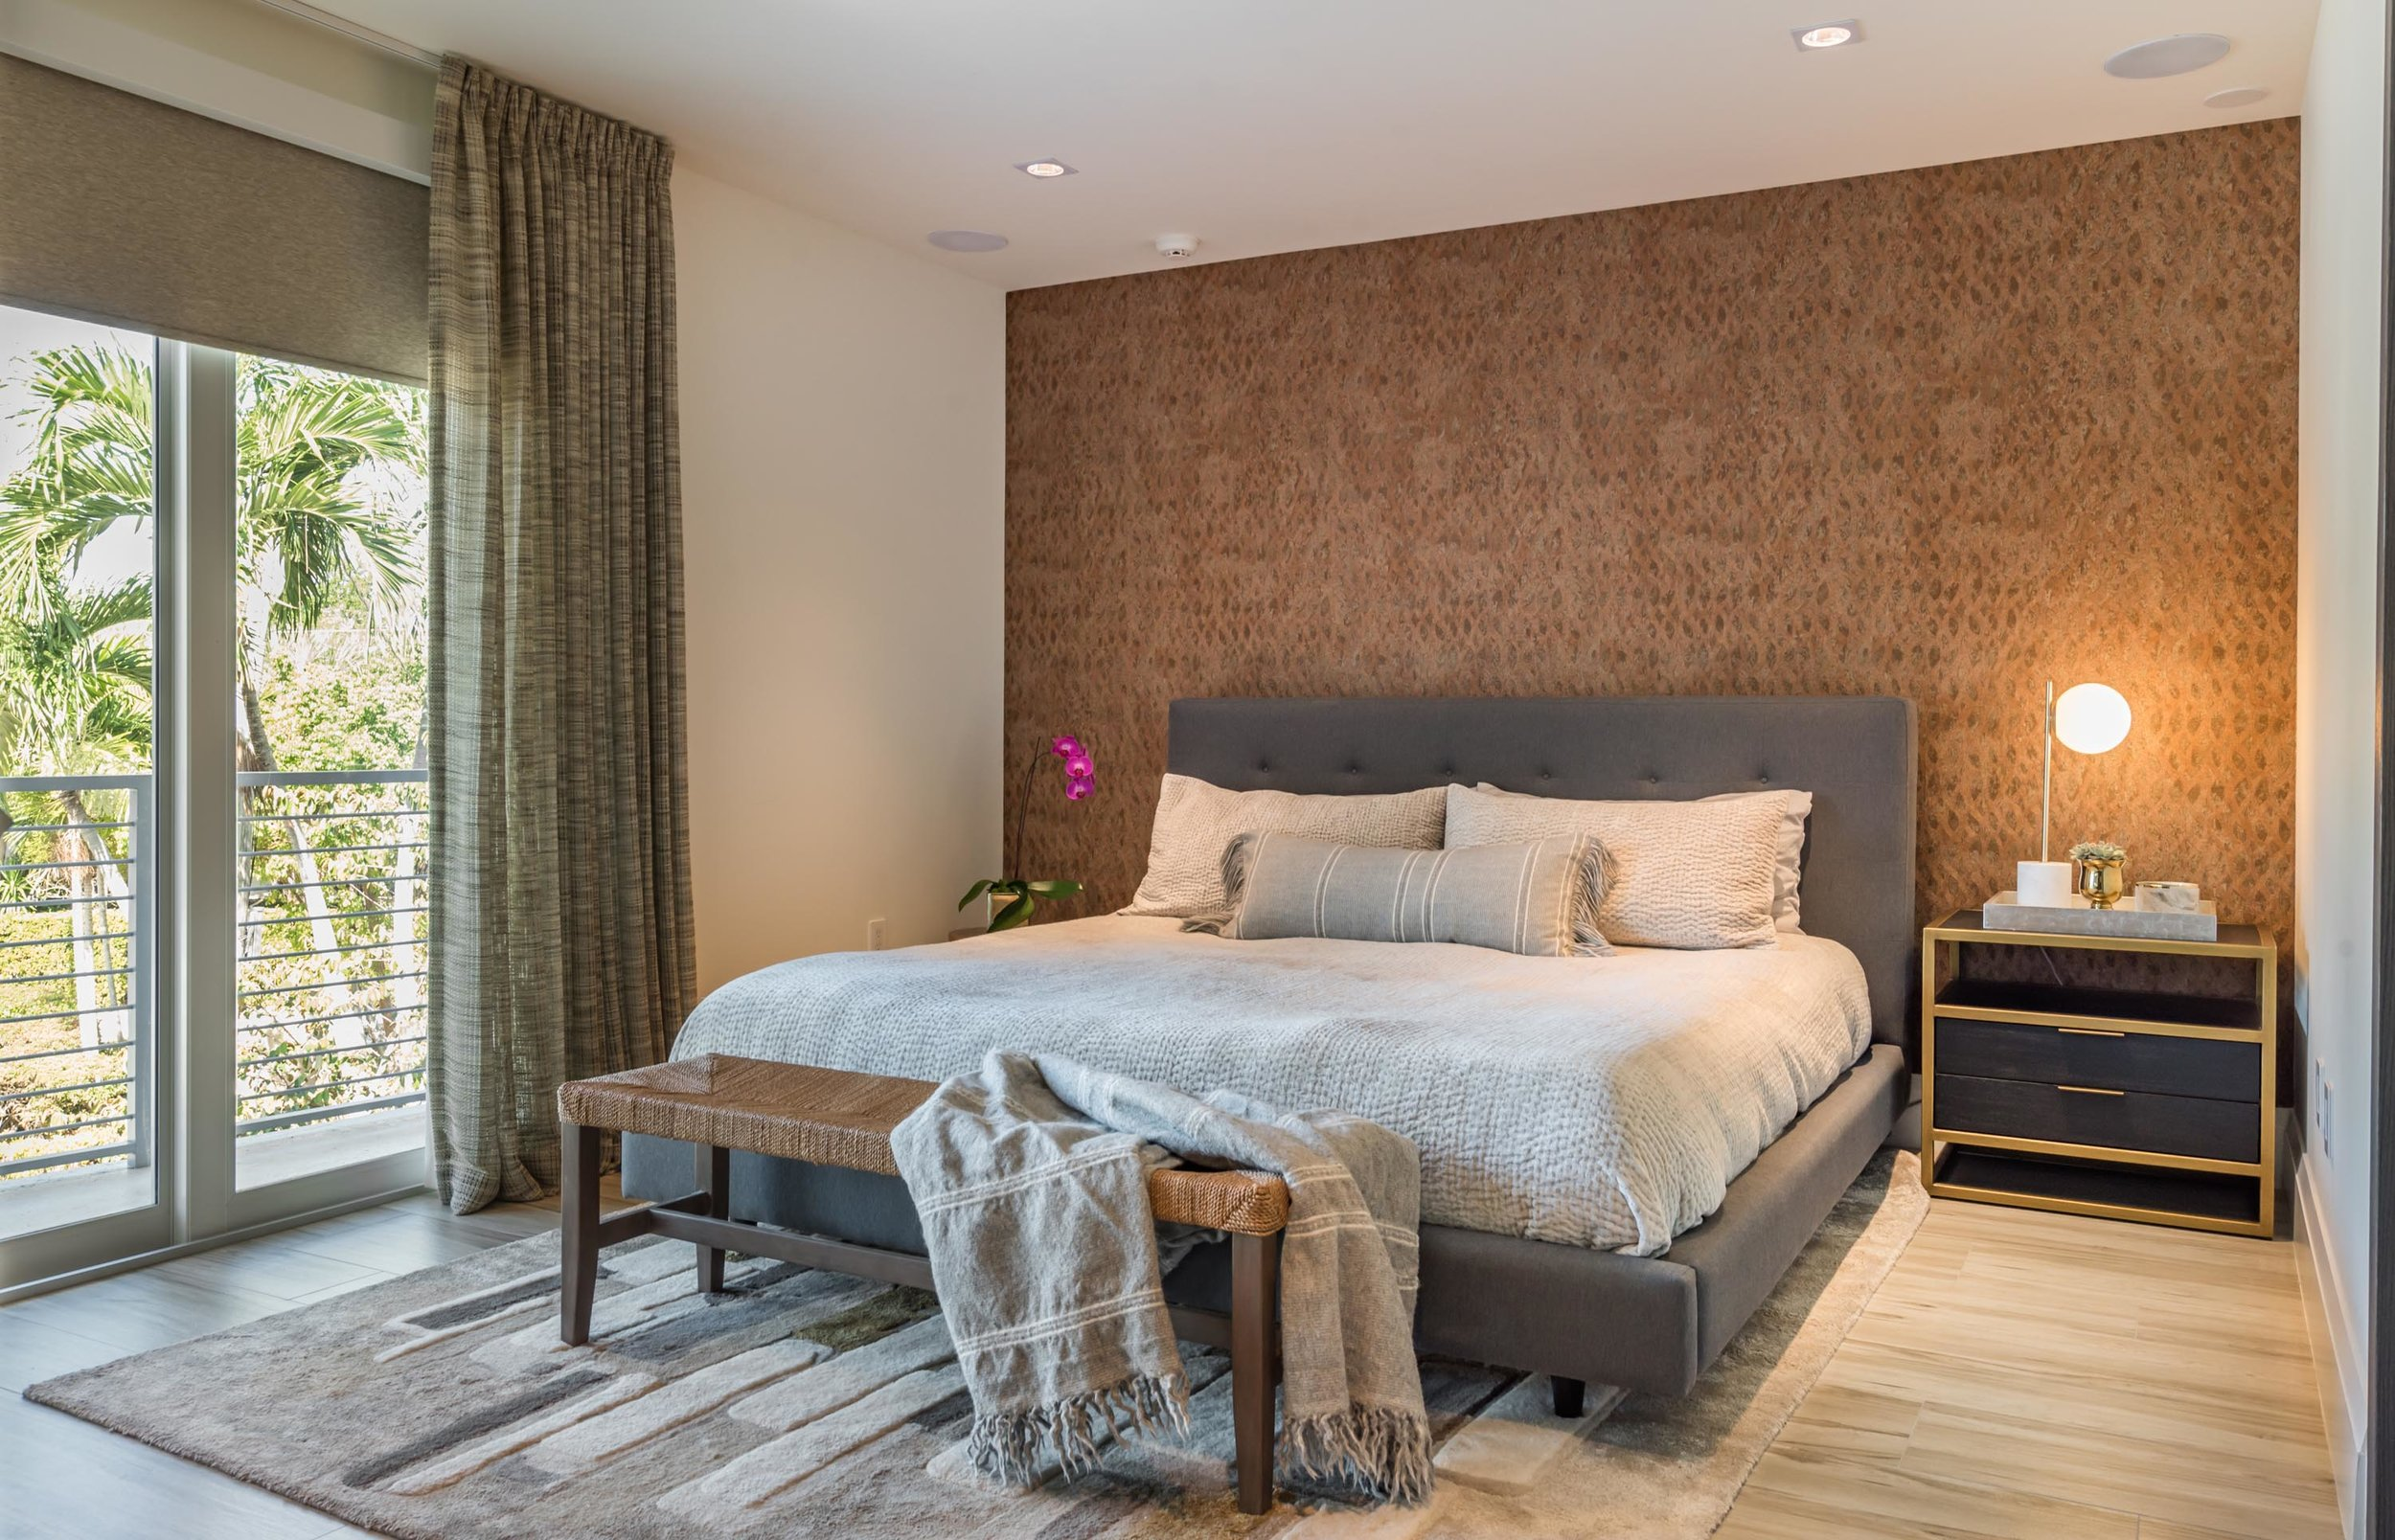 Bedroom with balcony, bed, bed bench, bedside drawer, study lamp, hardwood floor, carpet, and an accent wall